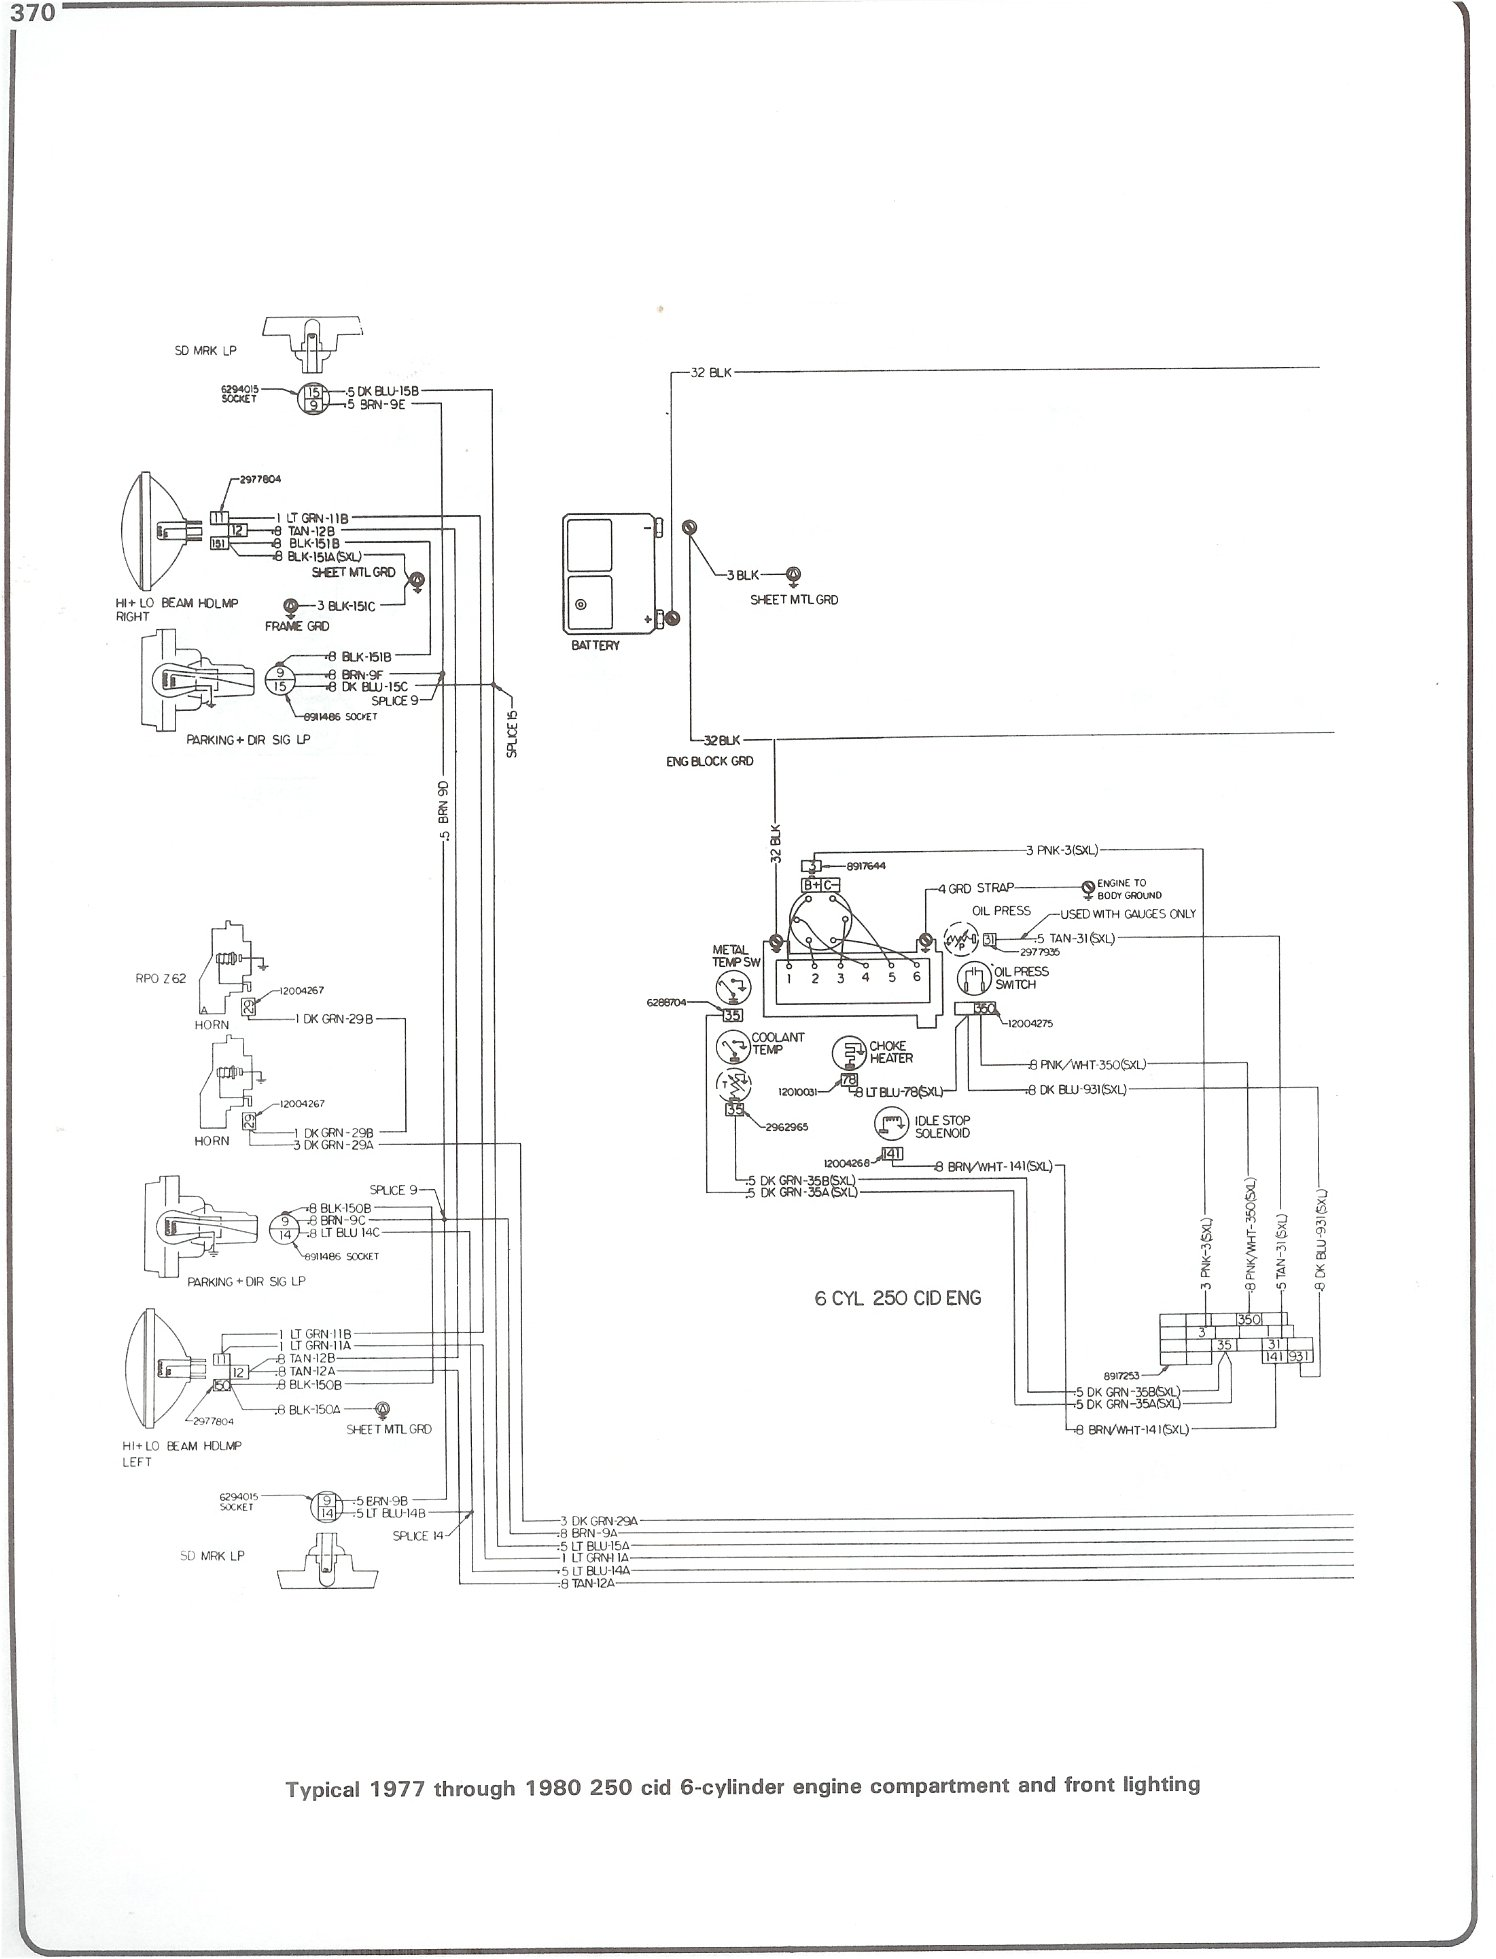 1982 Chevrolet Truck Alternator Wiring - Wiring Diagram Replace shy-symbol  - shy-symbol.miramontiseo.it | 1980 Chevy 1980 Pick Up Alternator Wiring Diagram |  | shy-symbol.miramontiseo.it